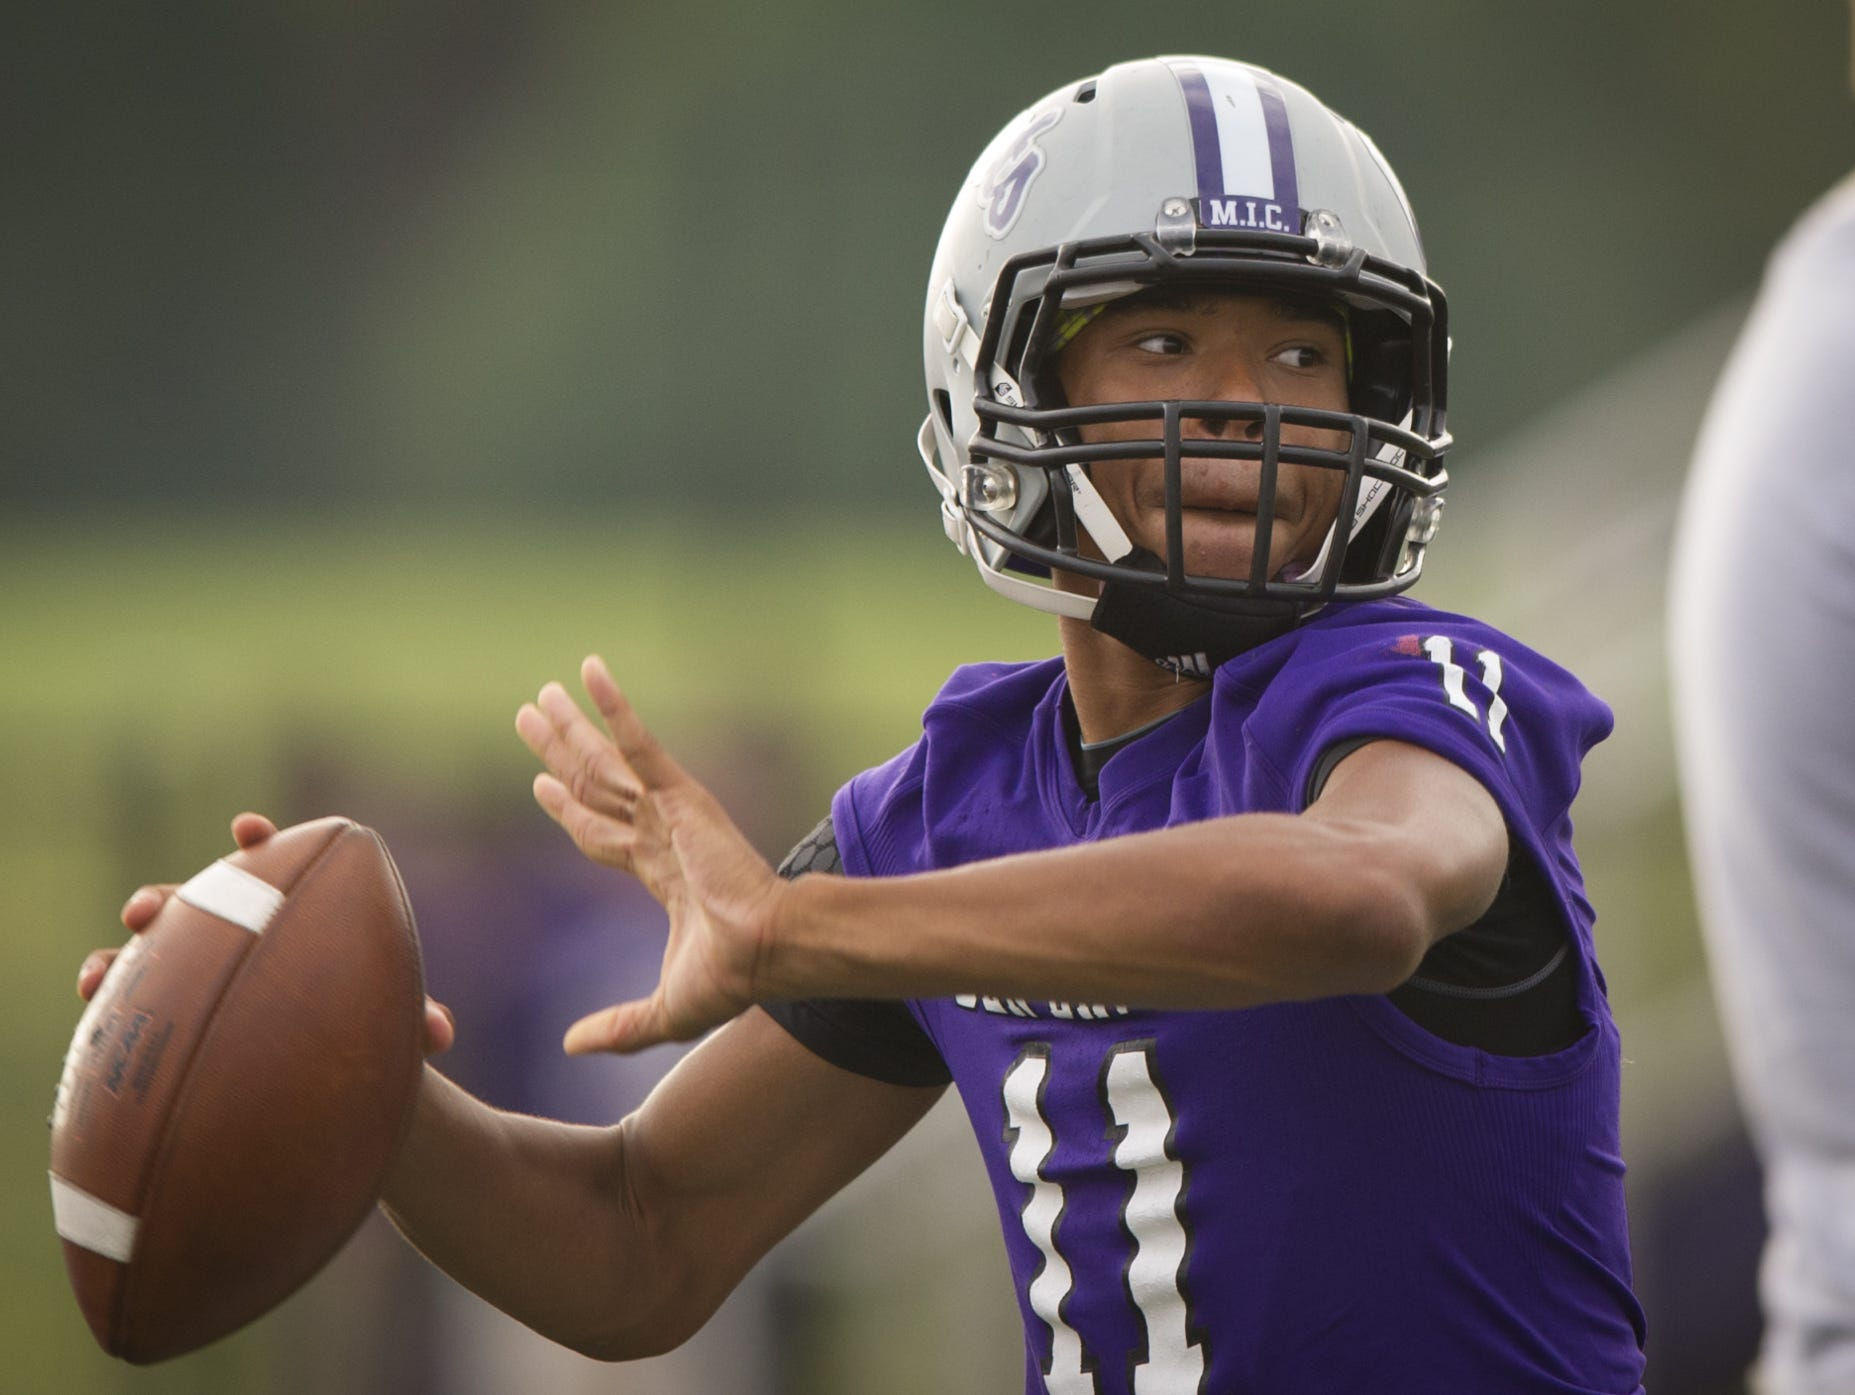 Ben Davis High School sophomore Reese Taylor (11) warms up his arm during pre-game activities of a IHSAA varsity football game at Ben Davis High School, Friday, September 18, 2015.